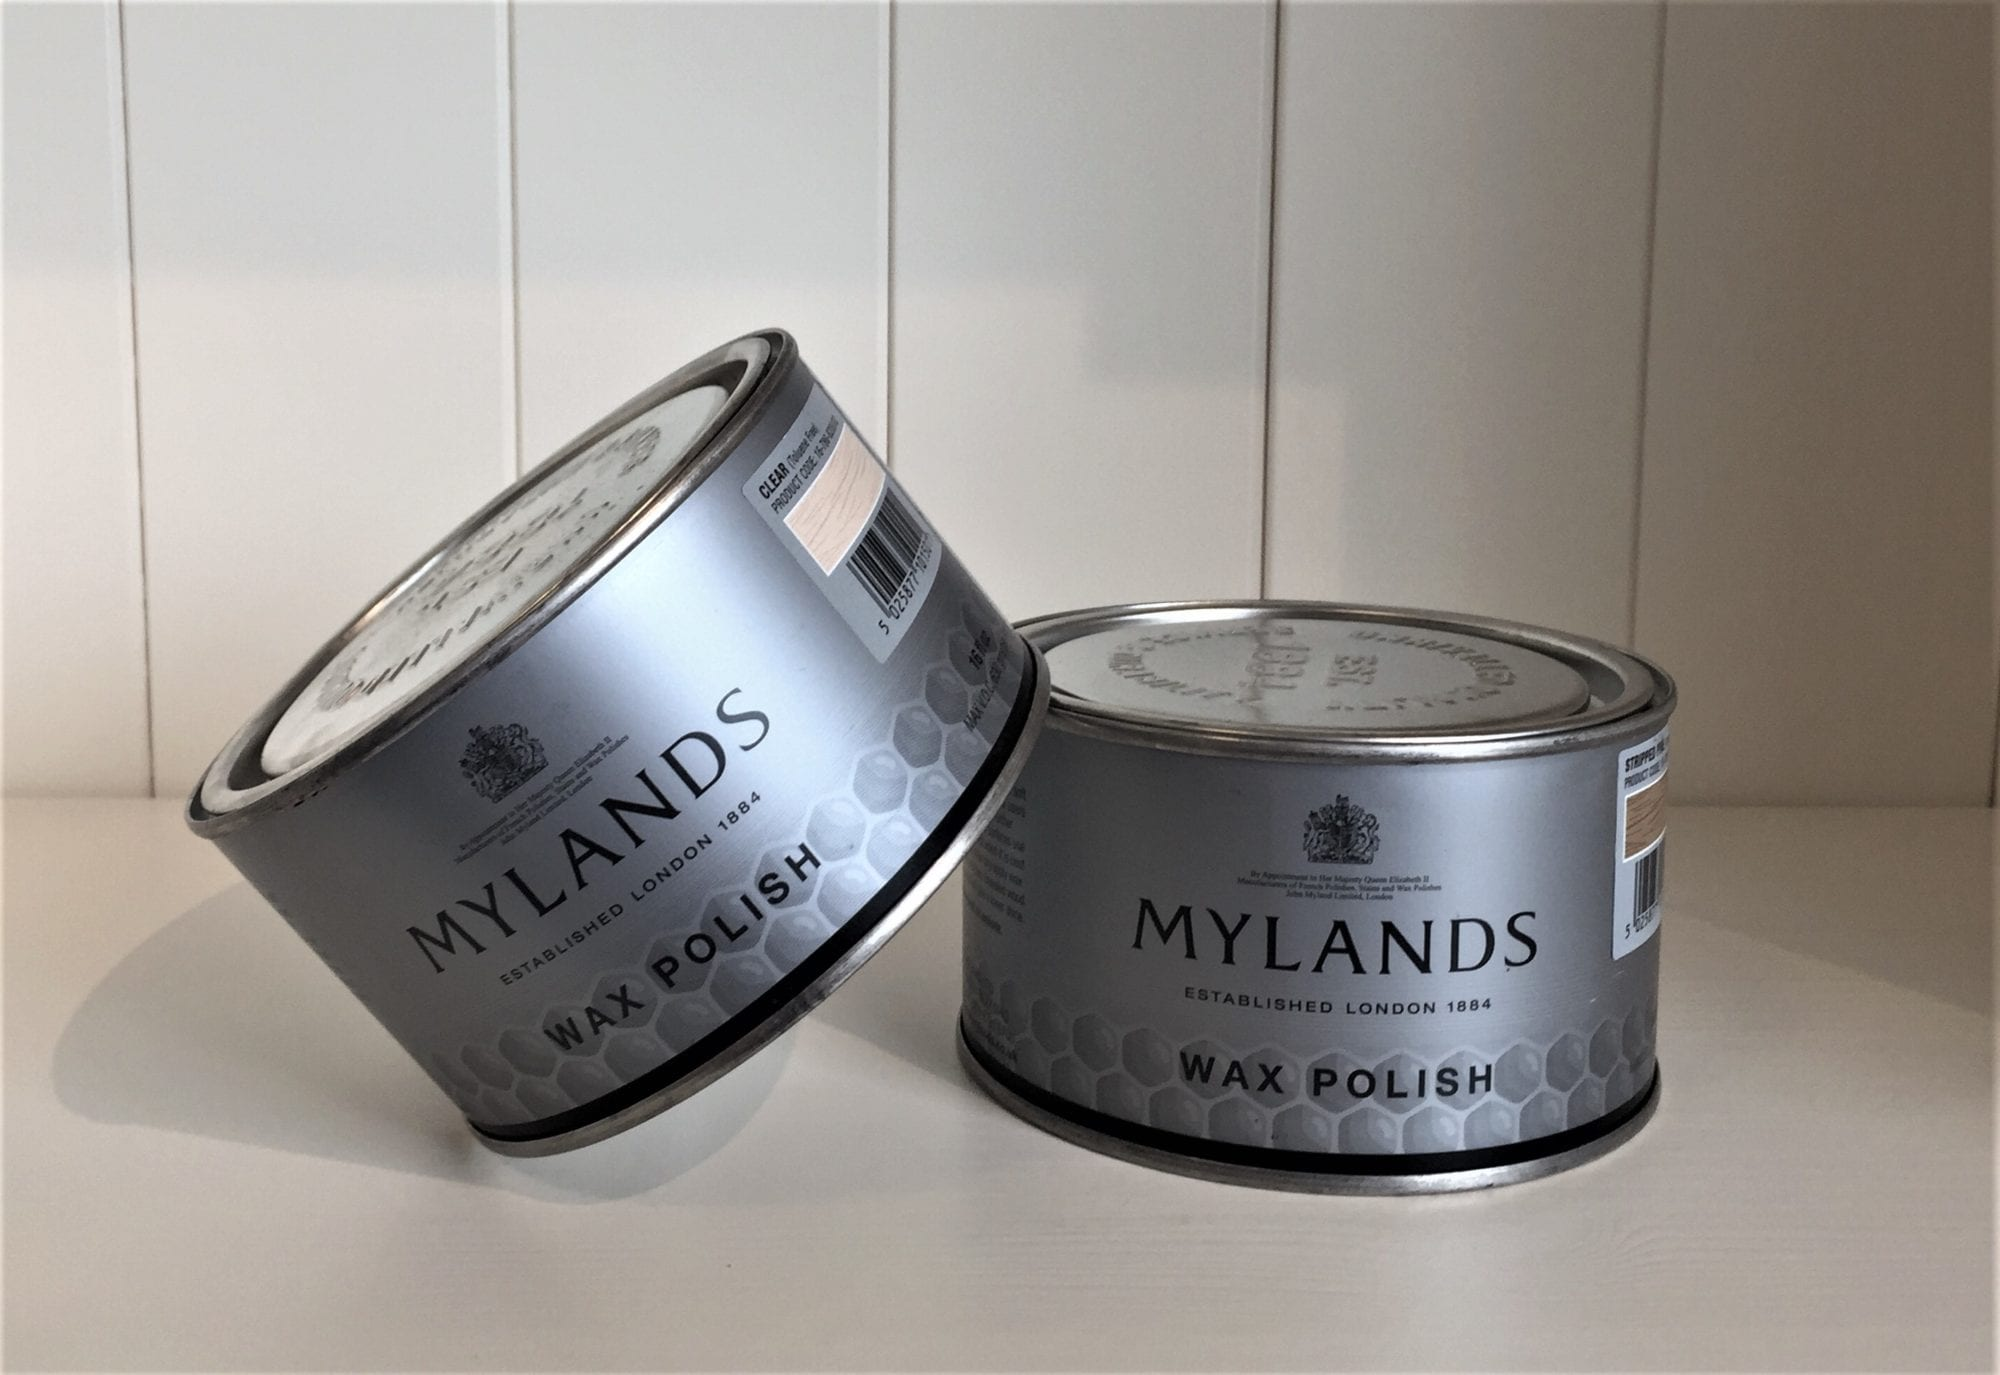 Mylands wax polish, stripped pine and clear